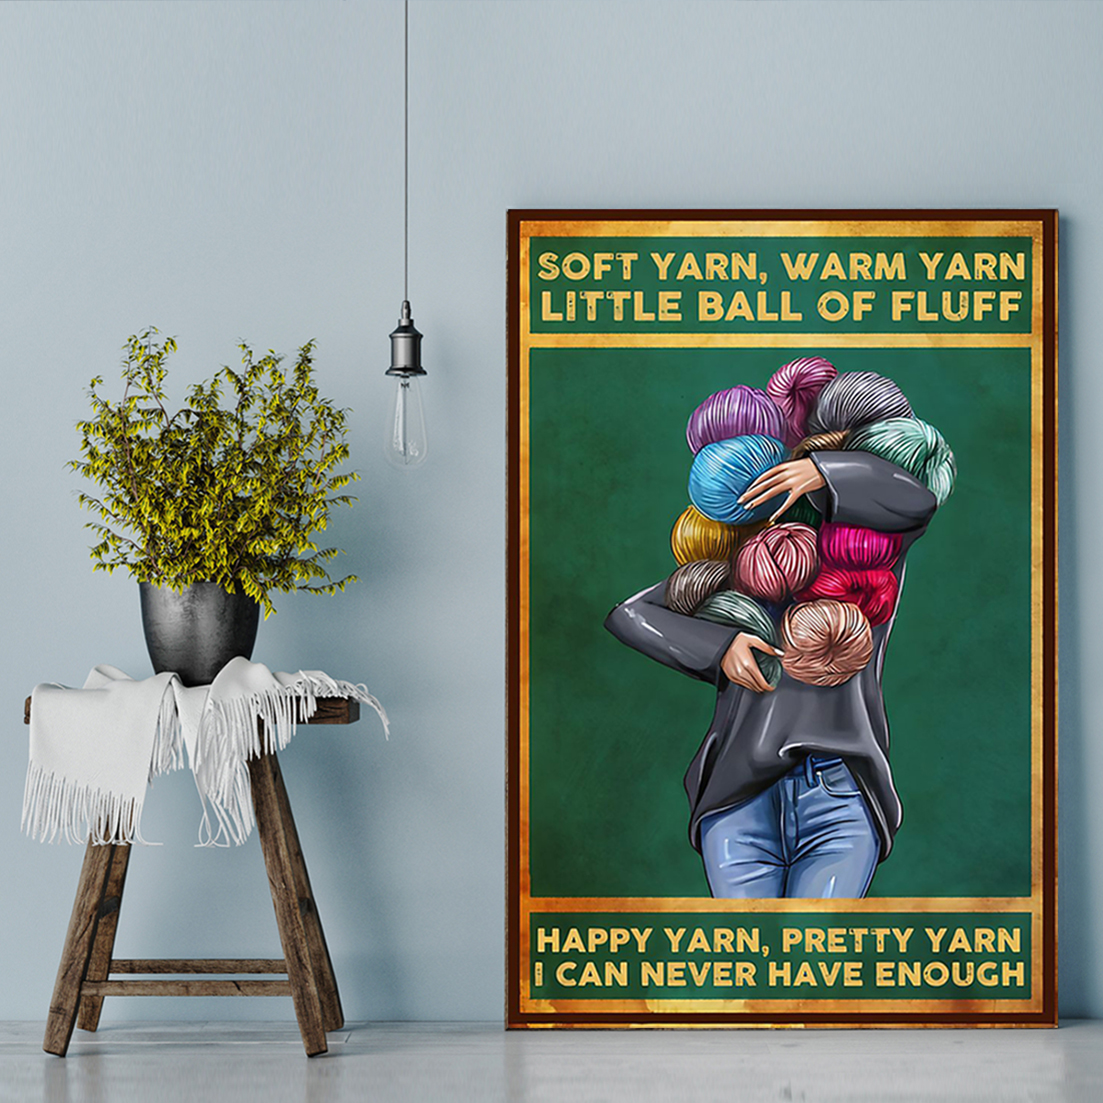 Soft yarn warm yarn little ball of fluff poster A3